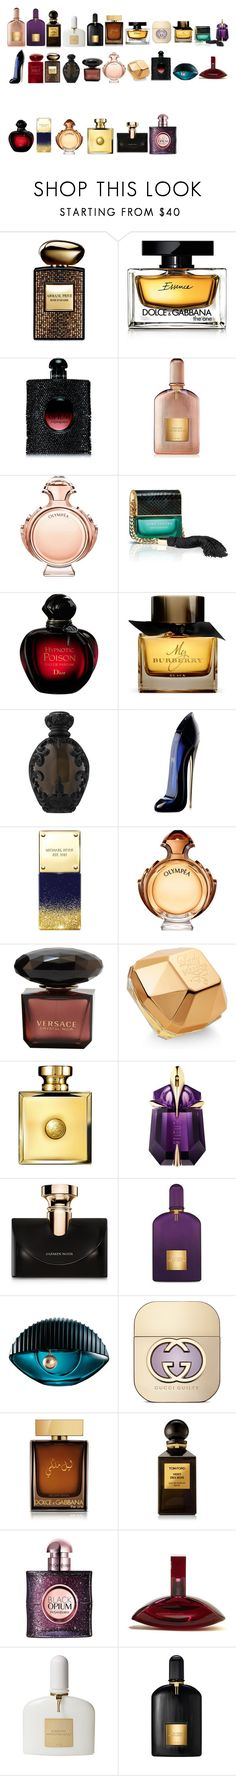 """Parfumes for fall and winter"" by azra-99 on Polyvore featuring beauty, Armani Beauty, Dolce&Gabbana, Yves Saint Laurent, Tom Ford, Paco Rabanne, Marc Jacobs, Burberry, Kat Von D and Carolina Herrera"